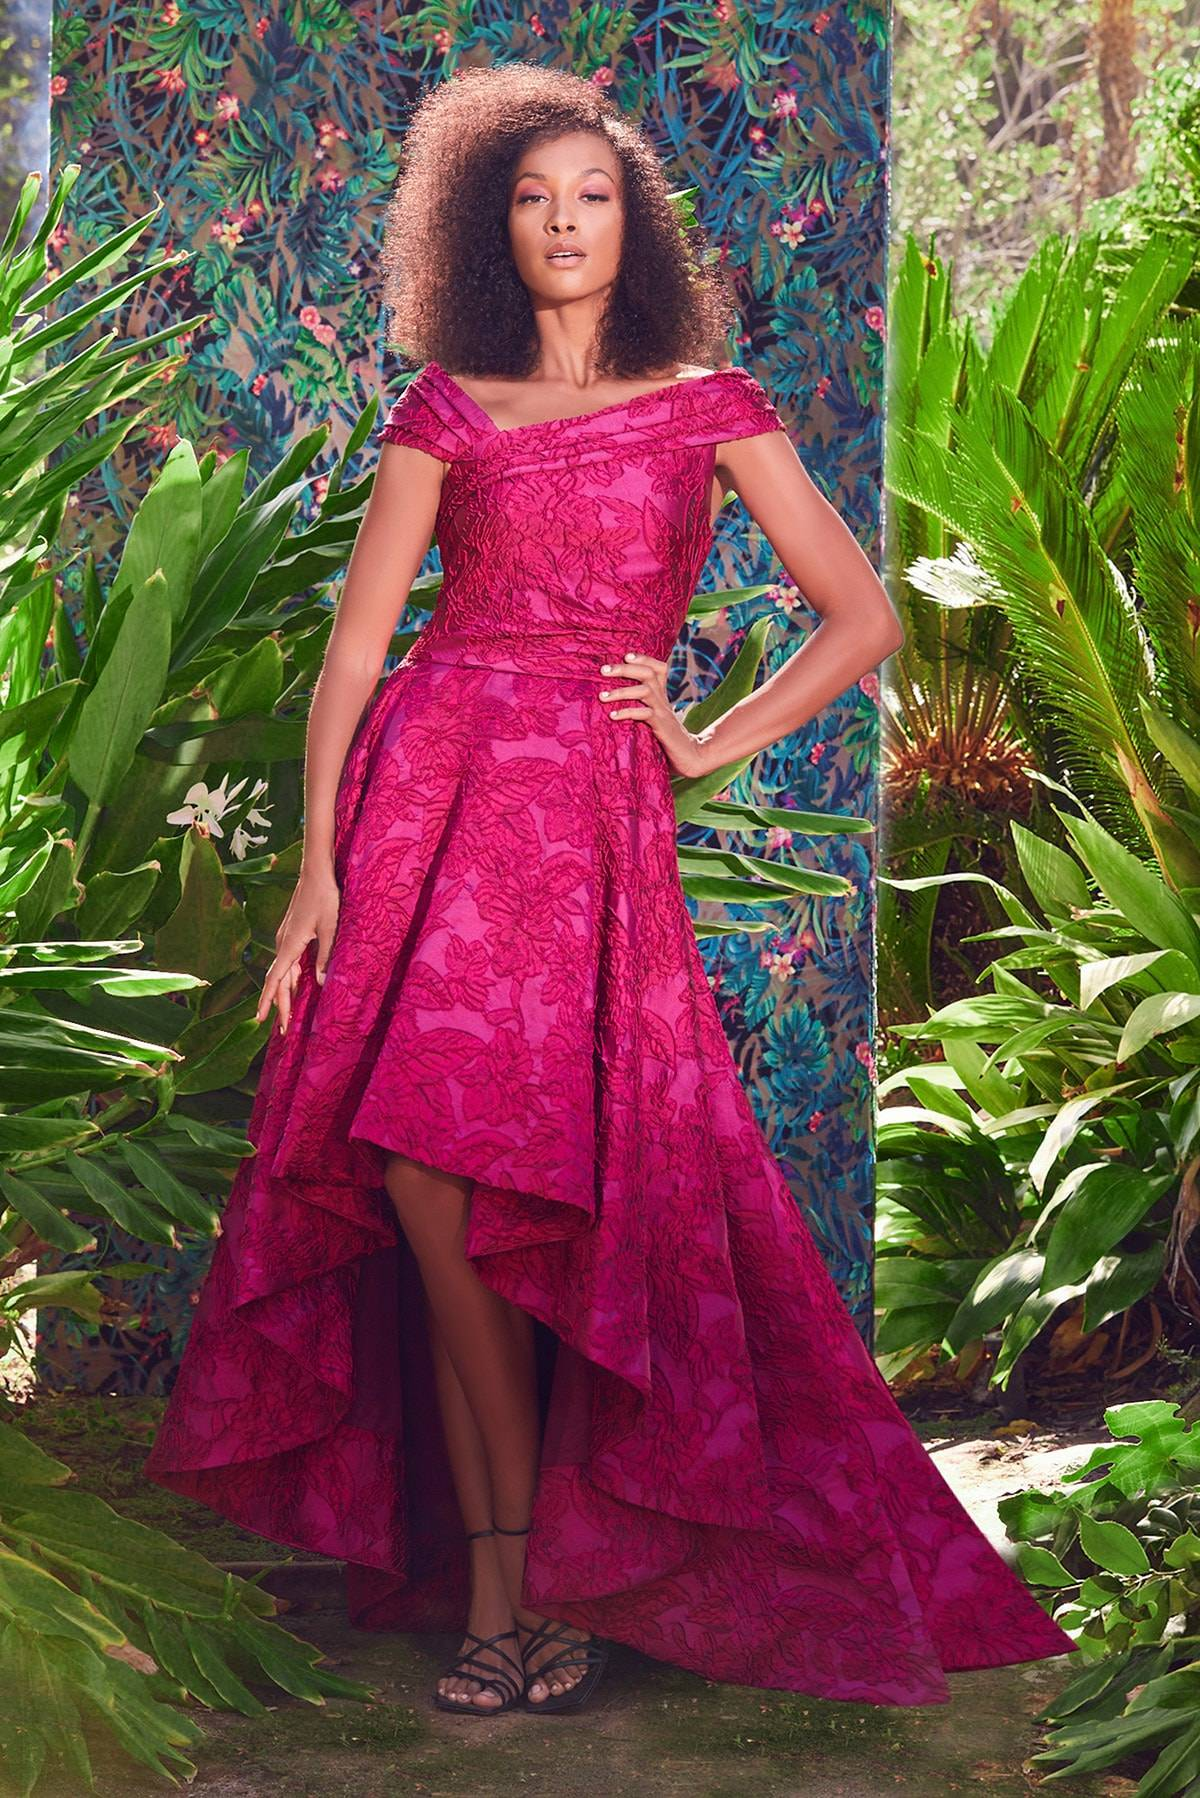 Spotted on the catwalk: Orchid Flower 2022 color of the year